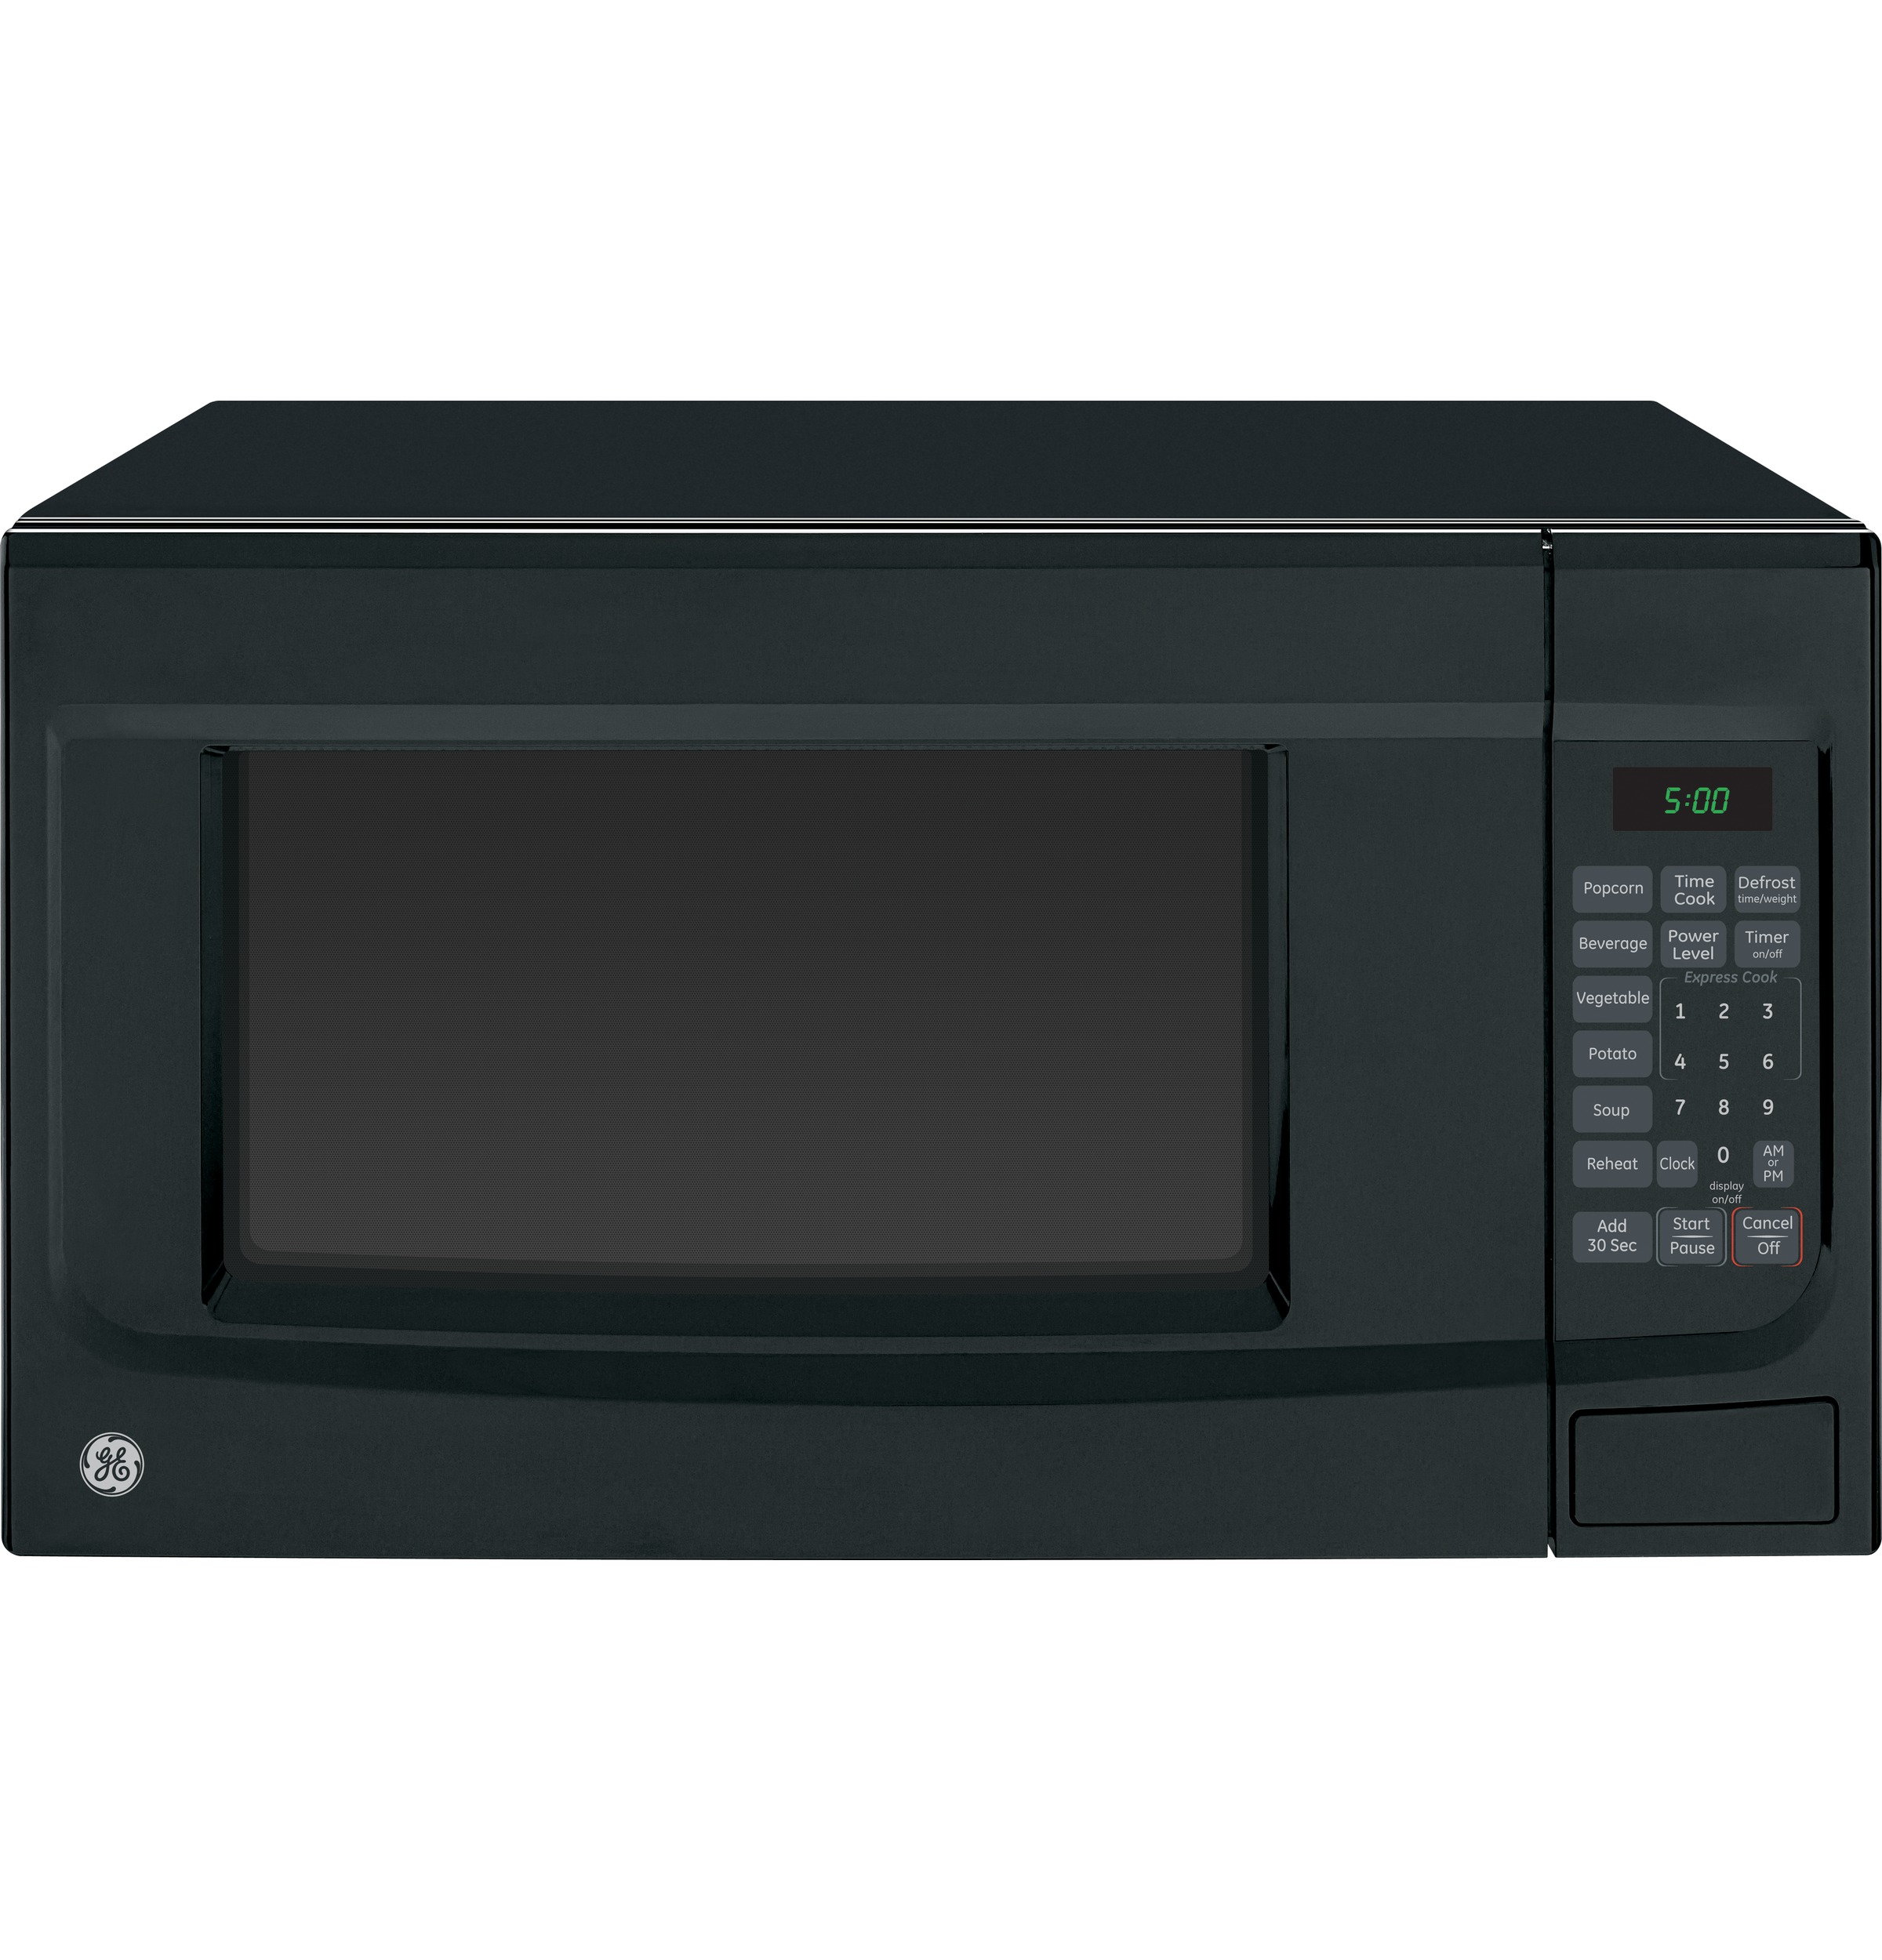 Countertop Oven And Microwave : ... Cu. Ft. Countertop Microwave Oven JES1451DSBB GE Appliances